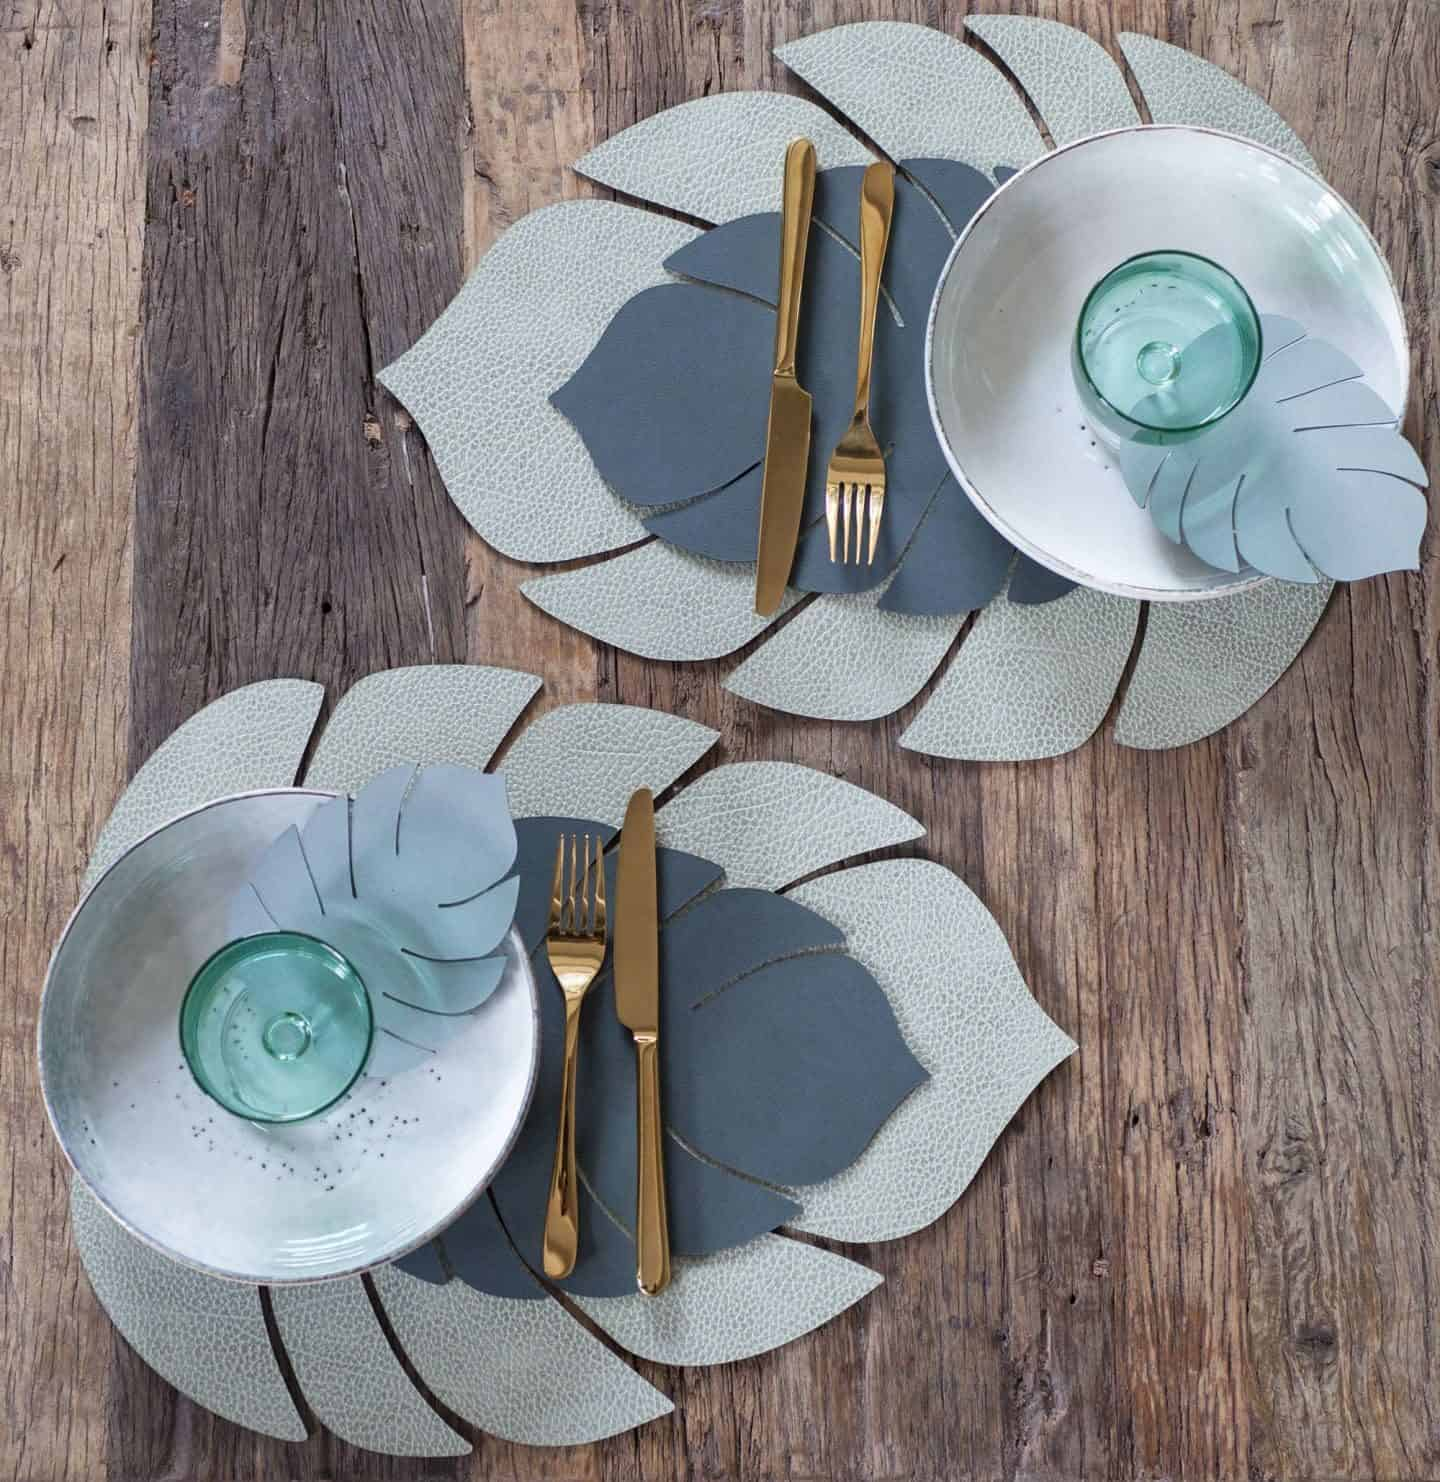 Green recycled leather made into Monstera leaf shaped placemats by LIND DNA